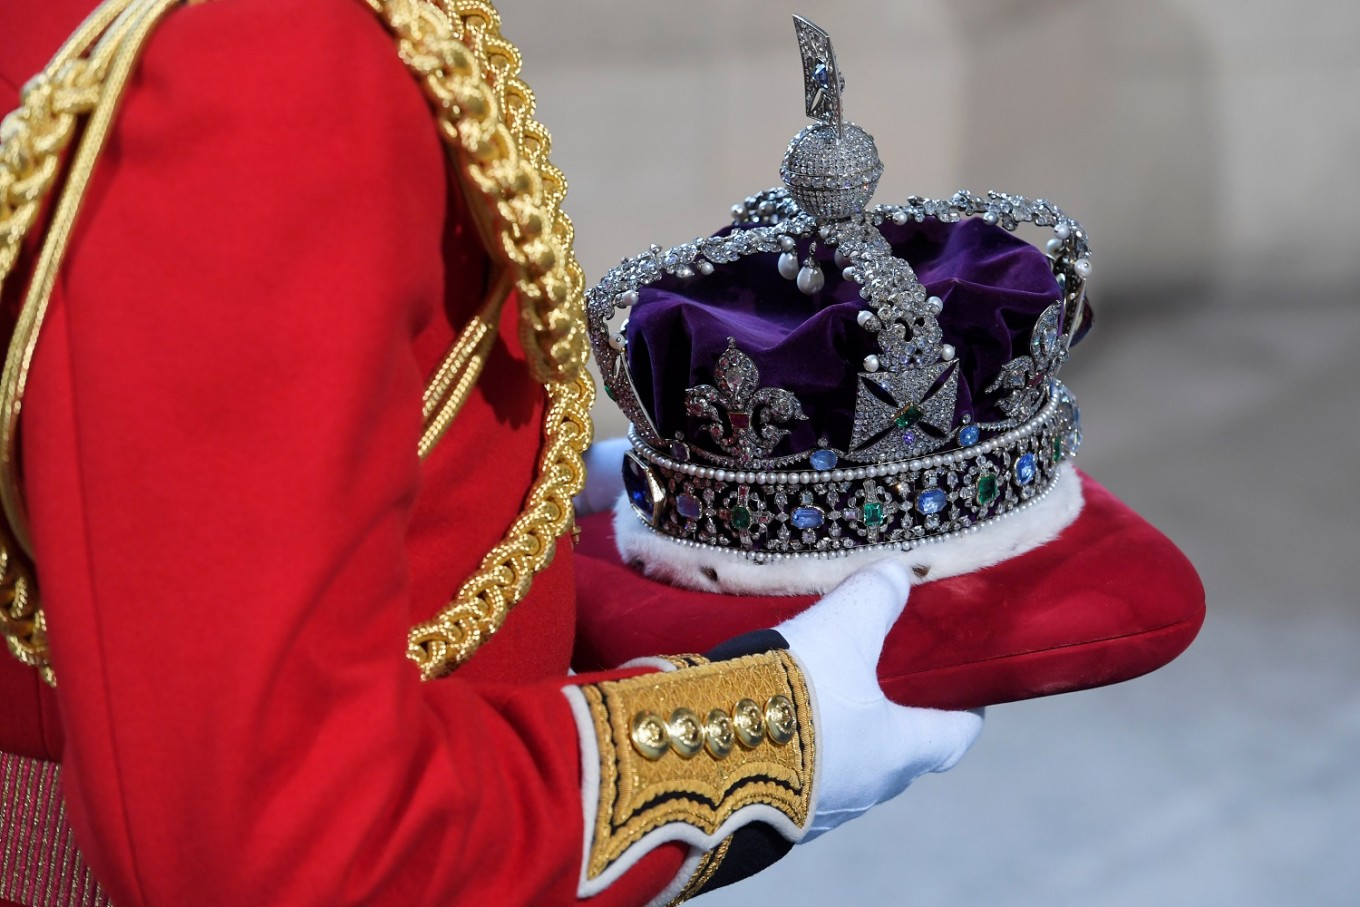 British crown jewels buried in biscuit tin during WWII